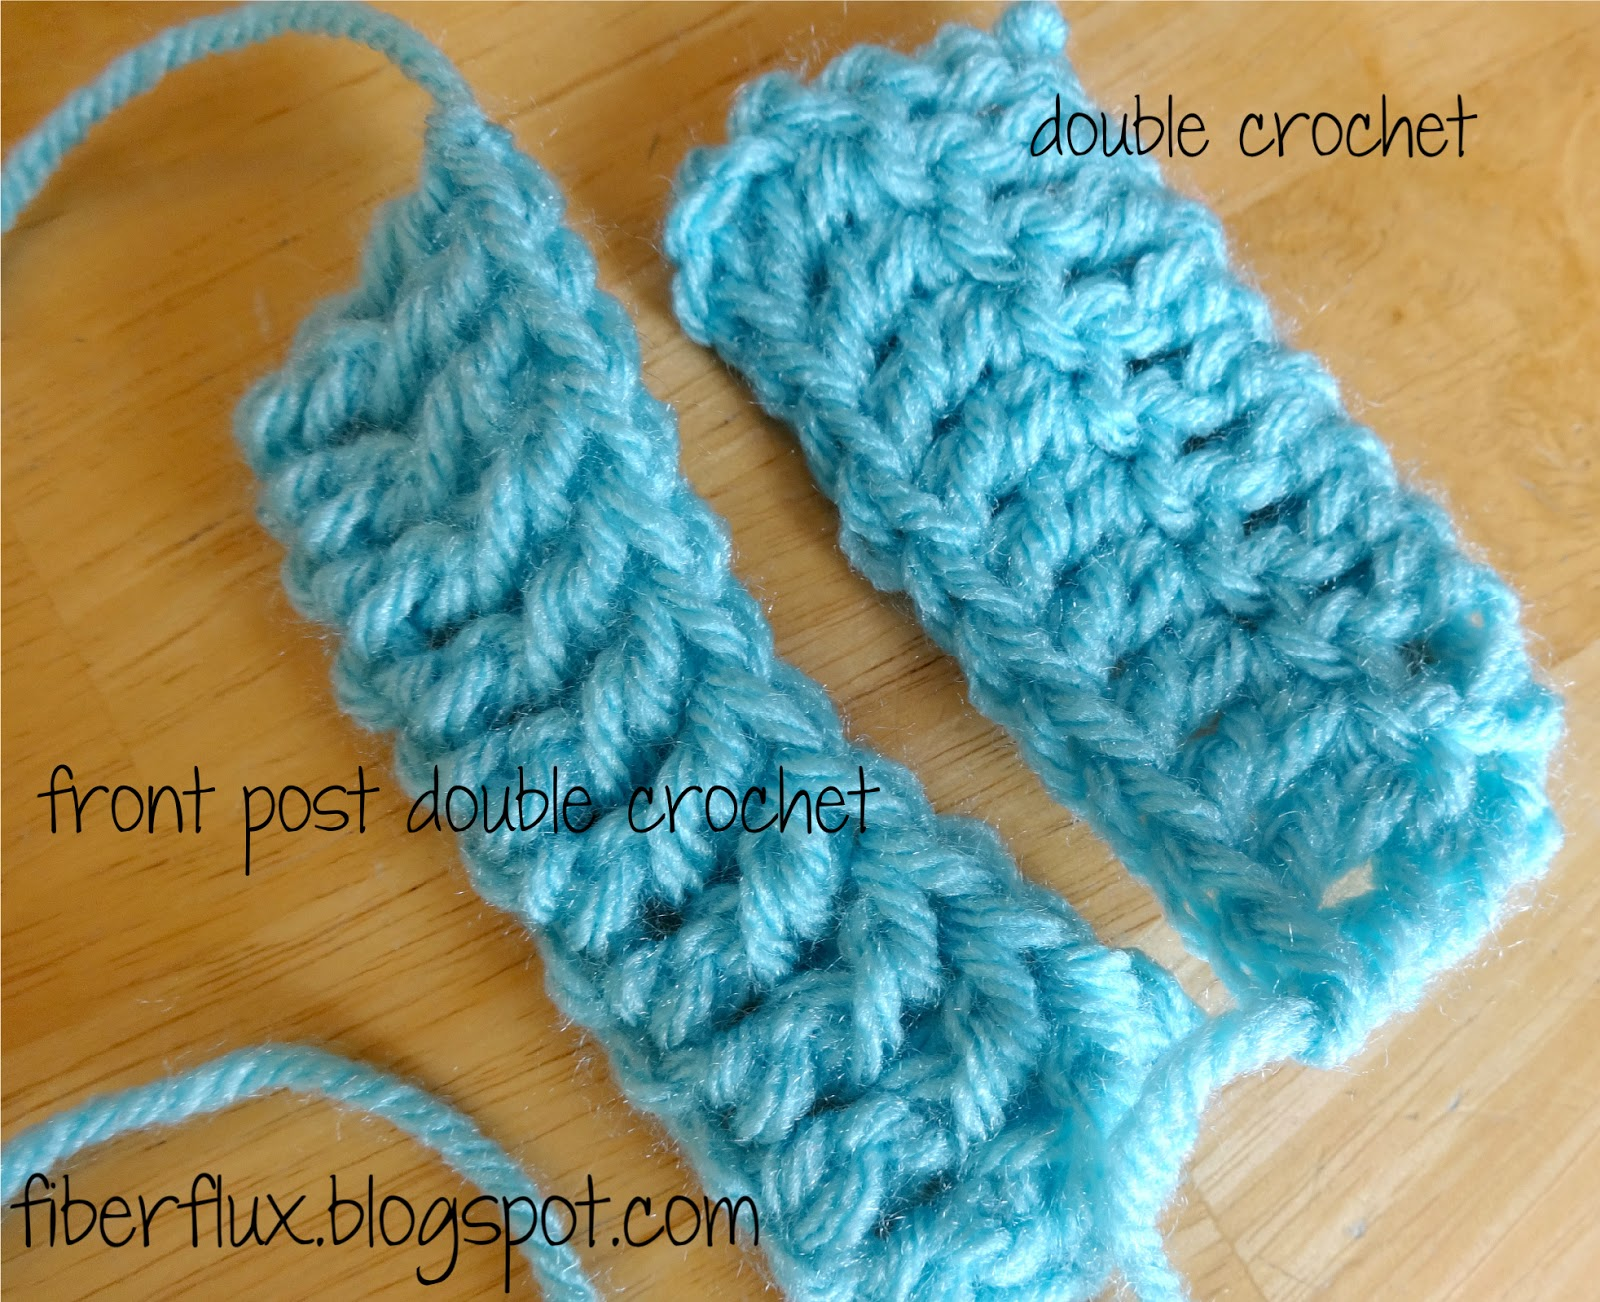 Crochet Stitches Front Post Double Crochet : Fiber Flux: How to Work the Front Post Double Crochet Stitch (fpdc)